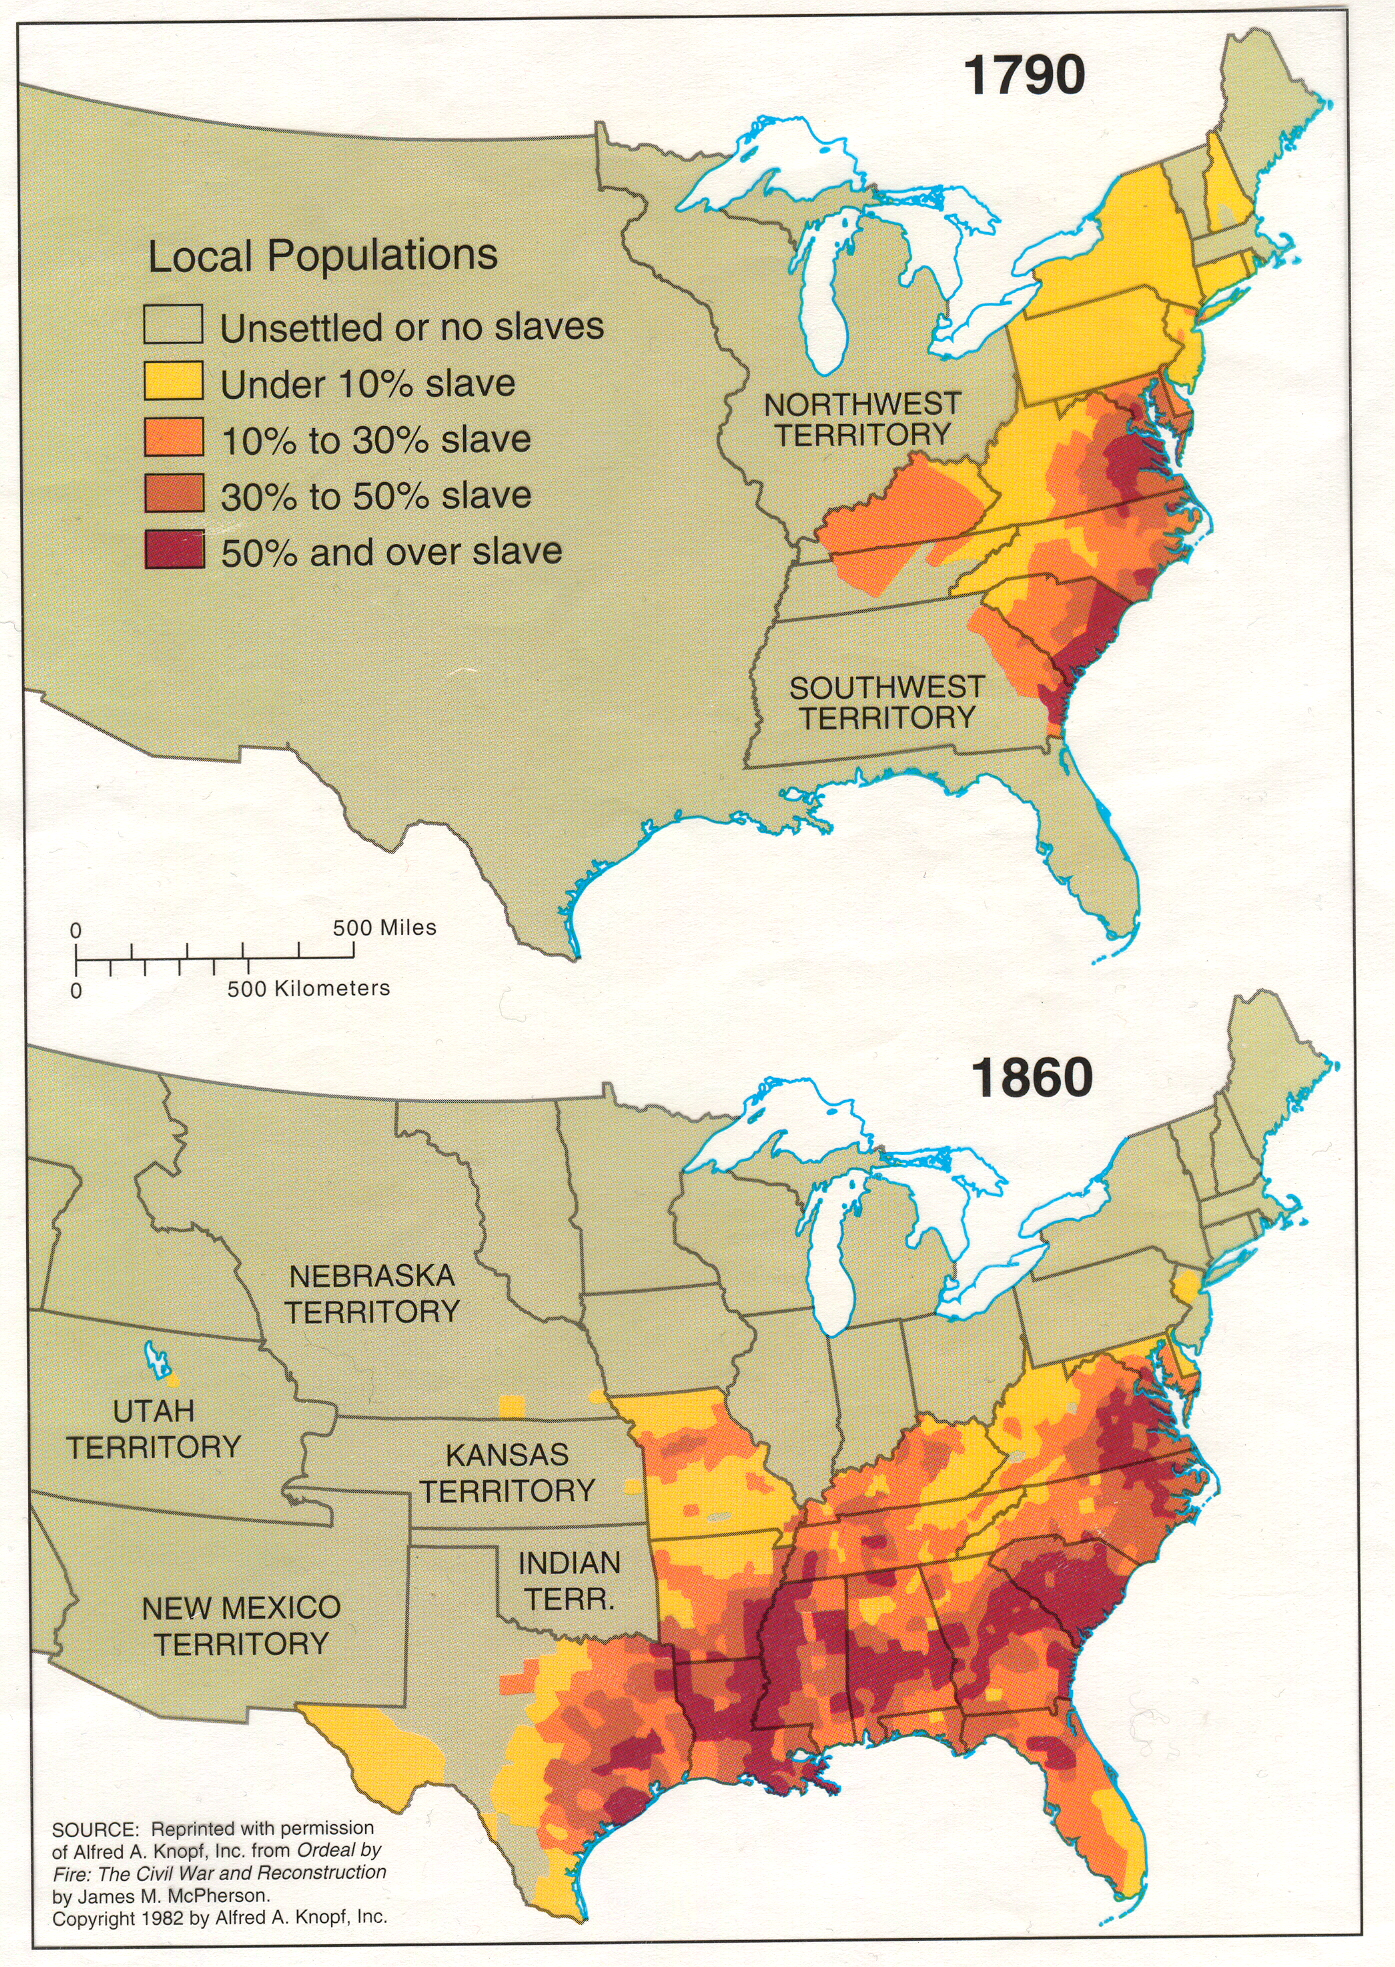 Slavery States Map.70 Maps That Explain America Vox